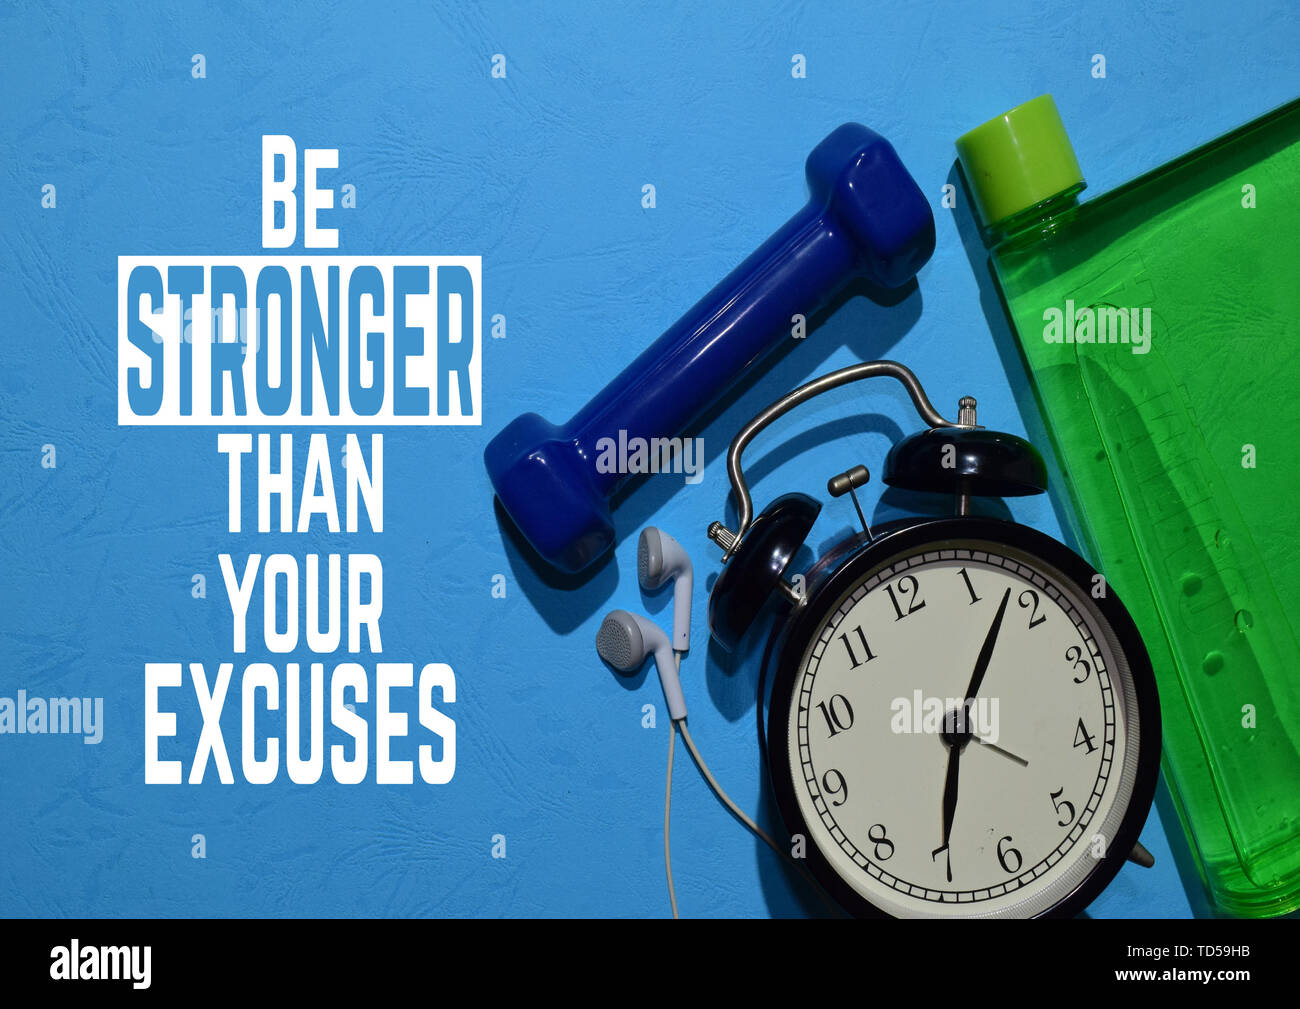 Motivation Quotes Fitness High Resolution Stock Photography And Images Alamy